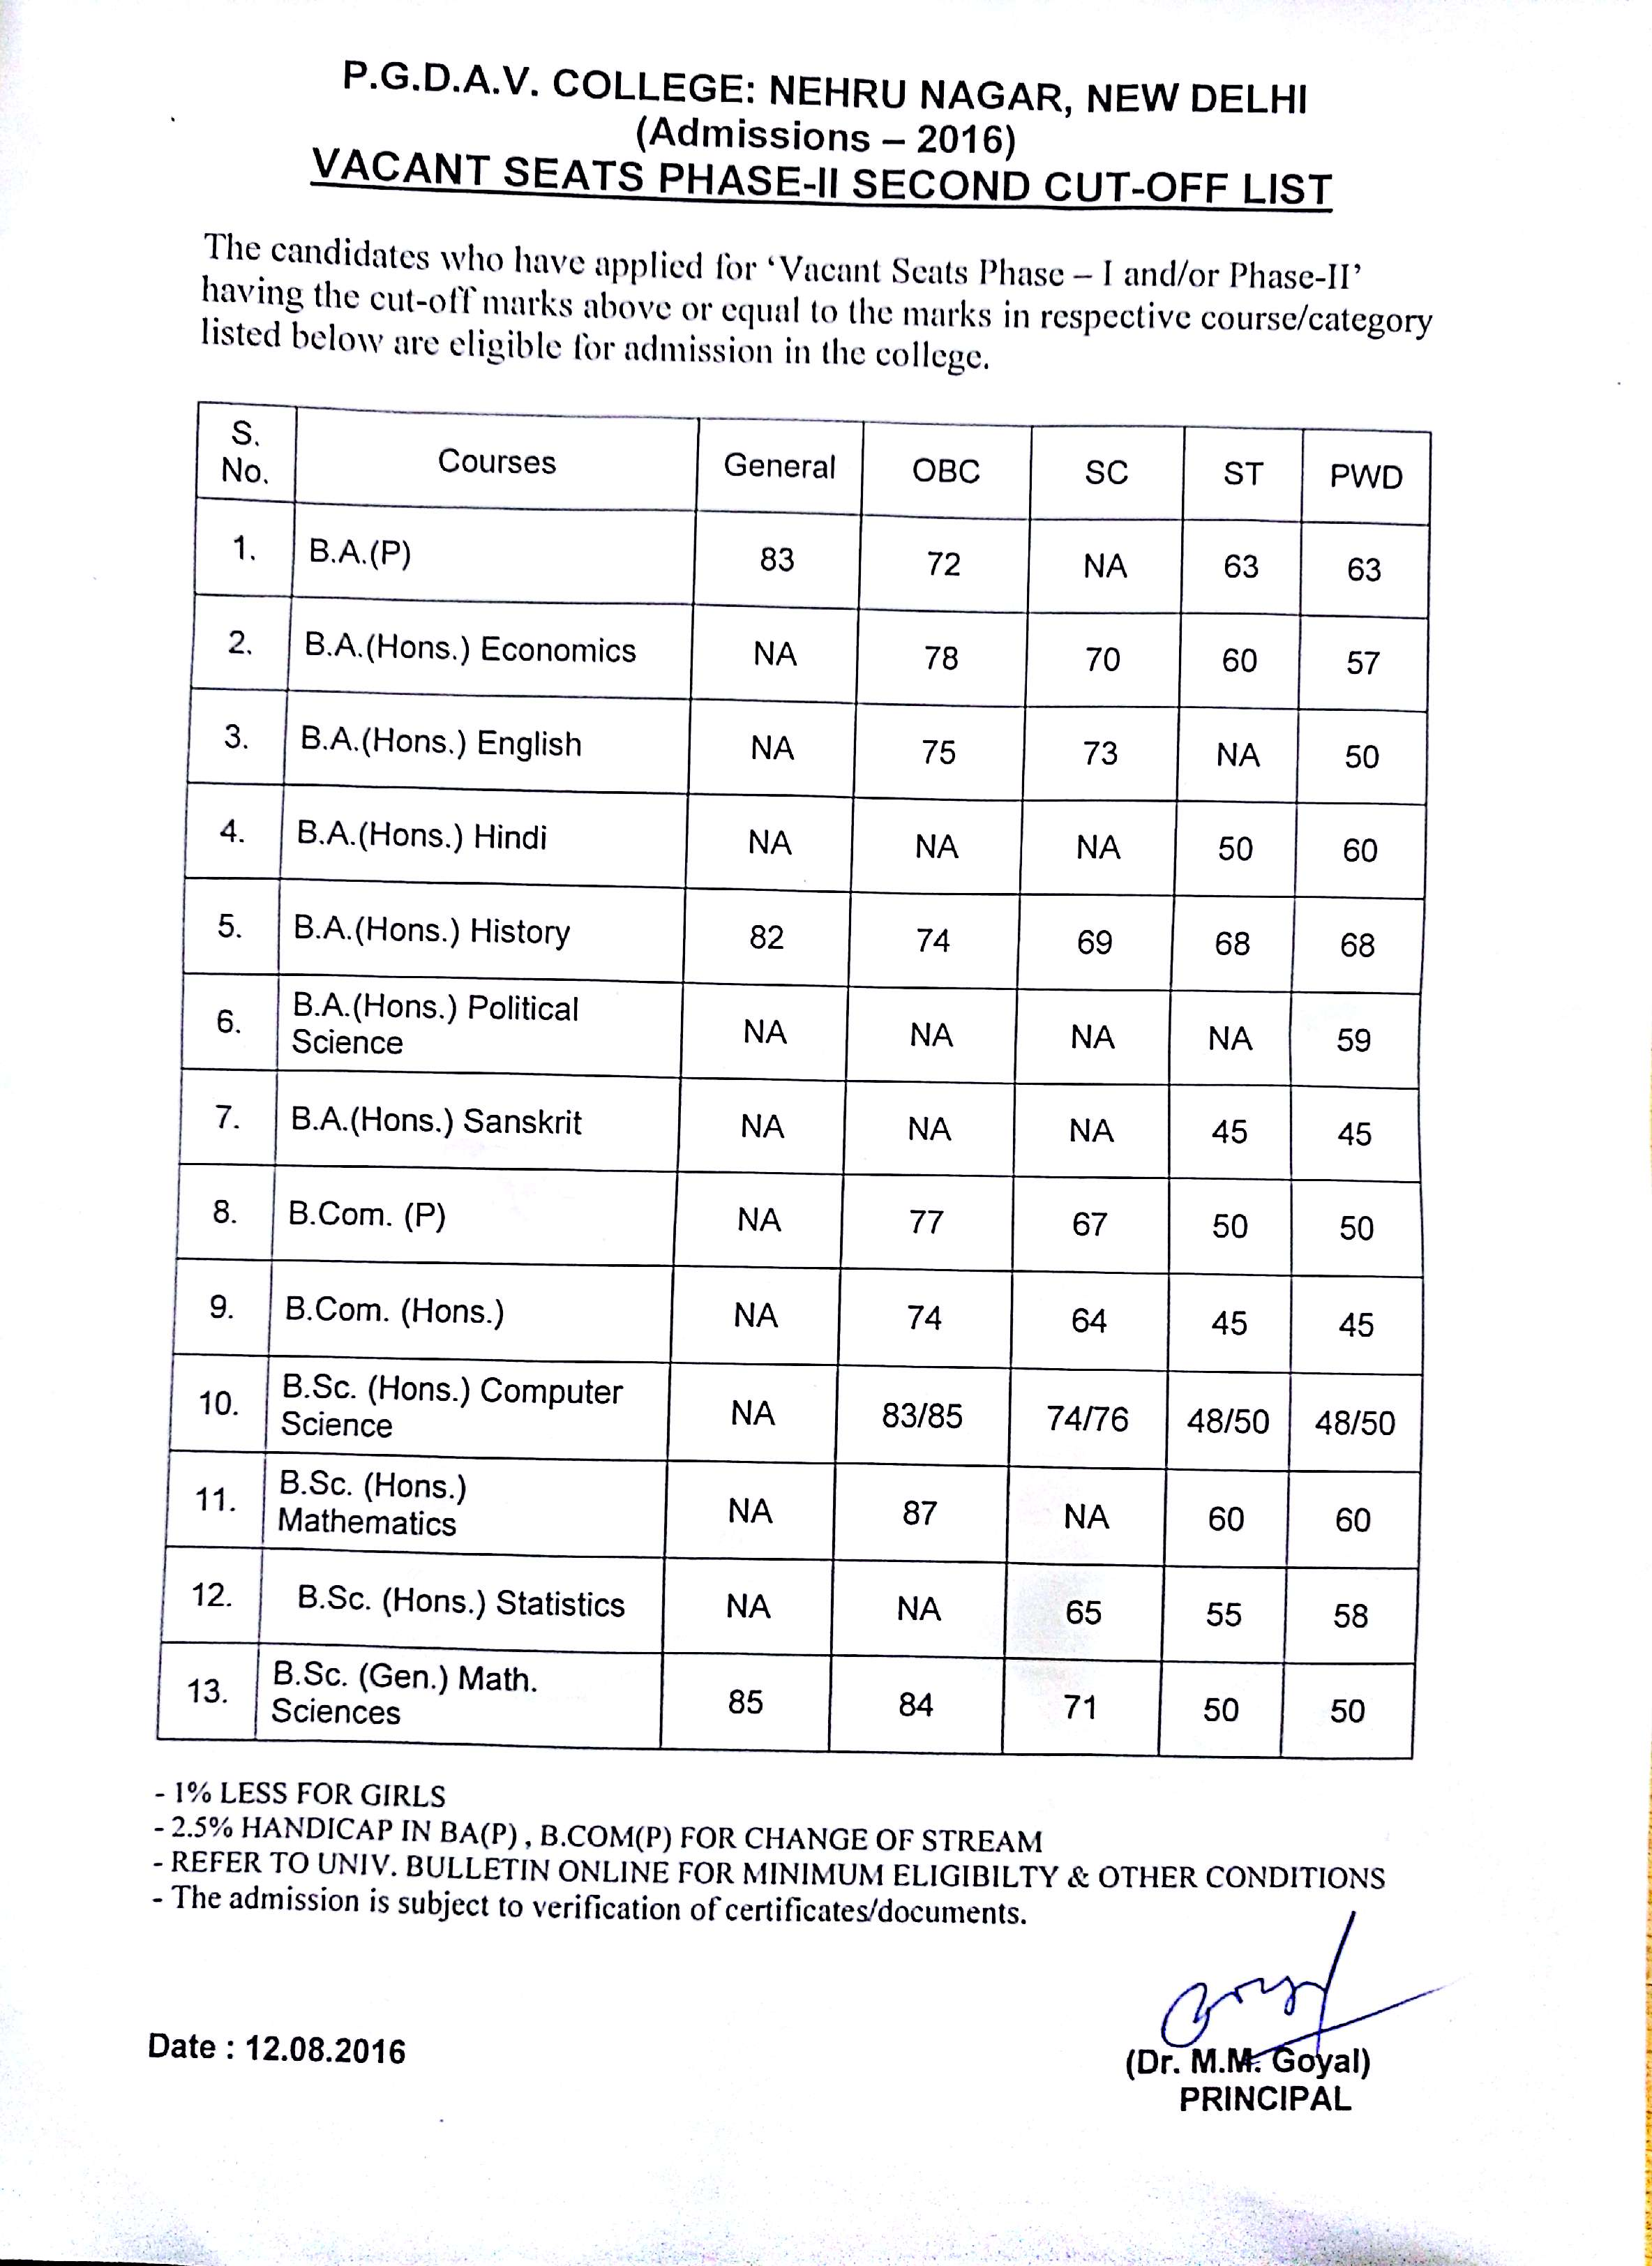 Vacant Seats Phase-II Second Cut-off List